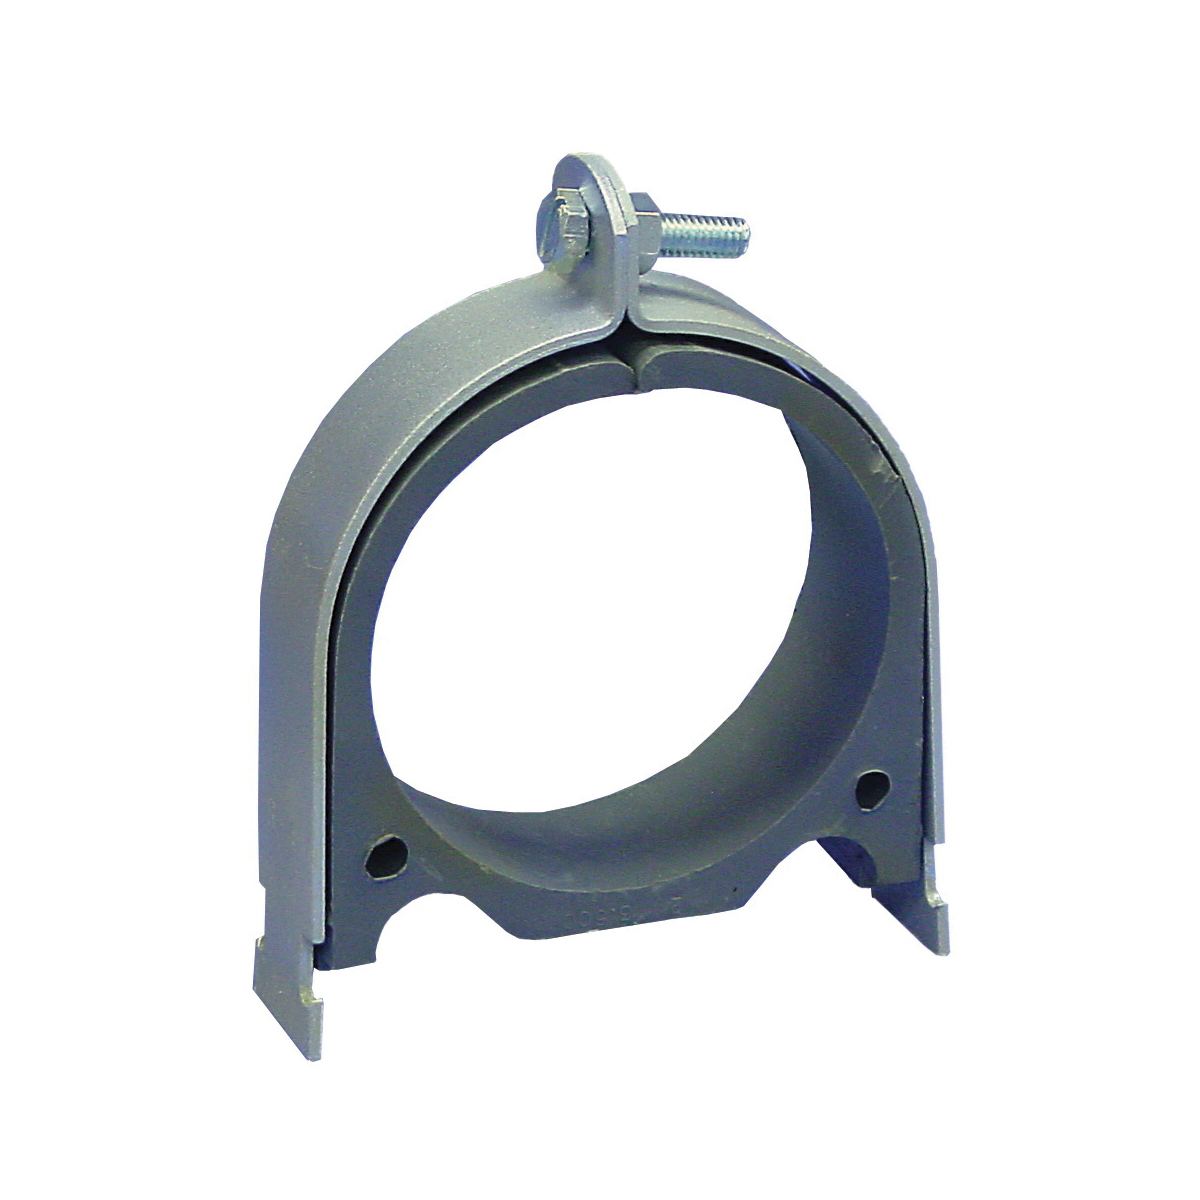 Anvil® Anvil-Strut™ 2400223612 FIG AS 032OD Cushion Clamp Assembly, 2 in Pipe, 800 lb Pullout/125 lb Transverse/125 lb Longitudinal Load, Carbon Steel, Electro-Galvanized, Domestic